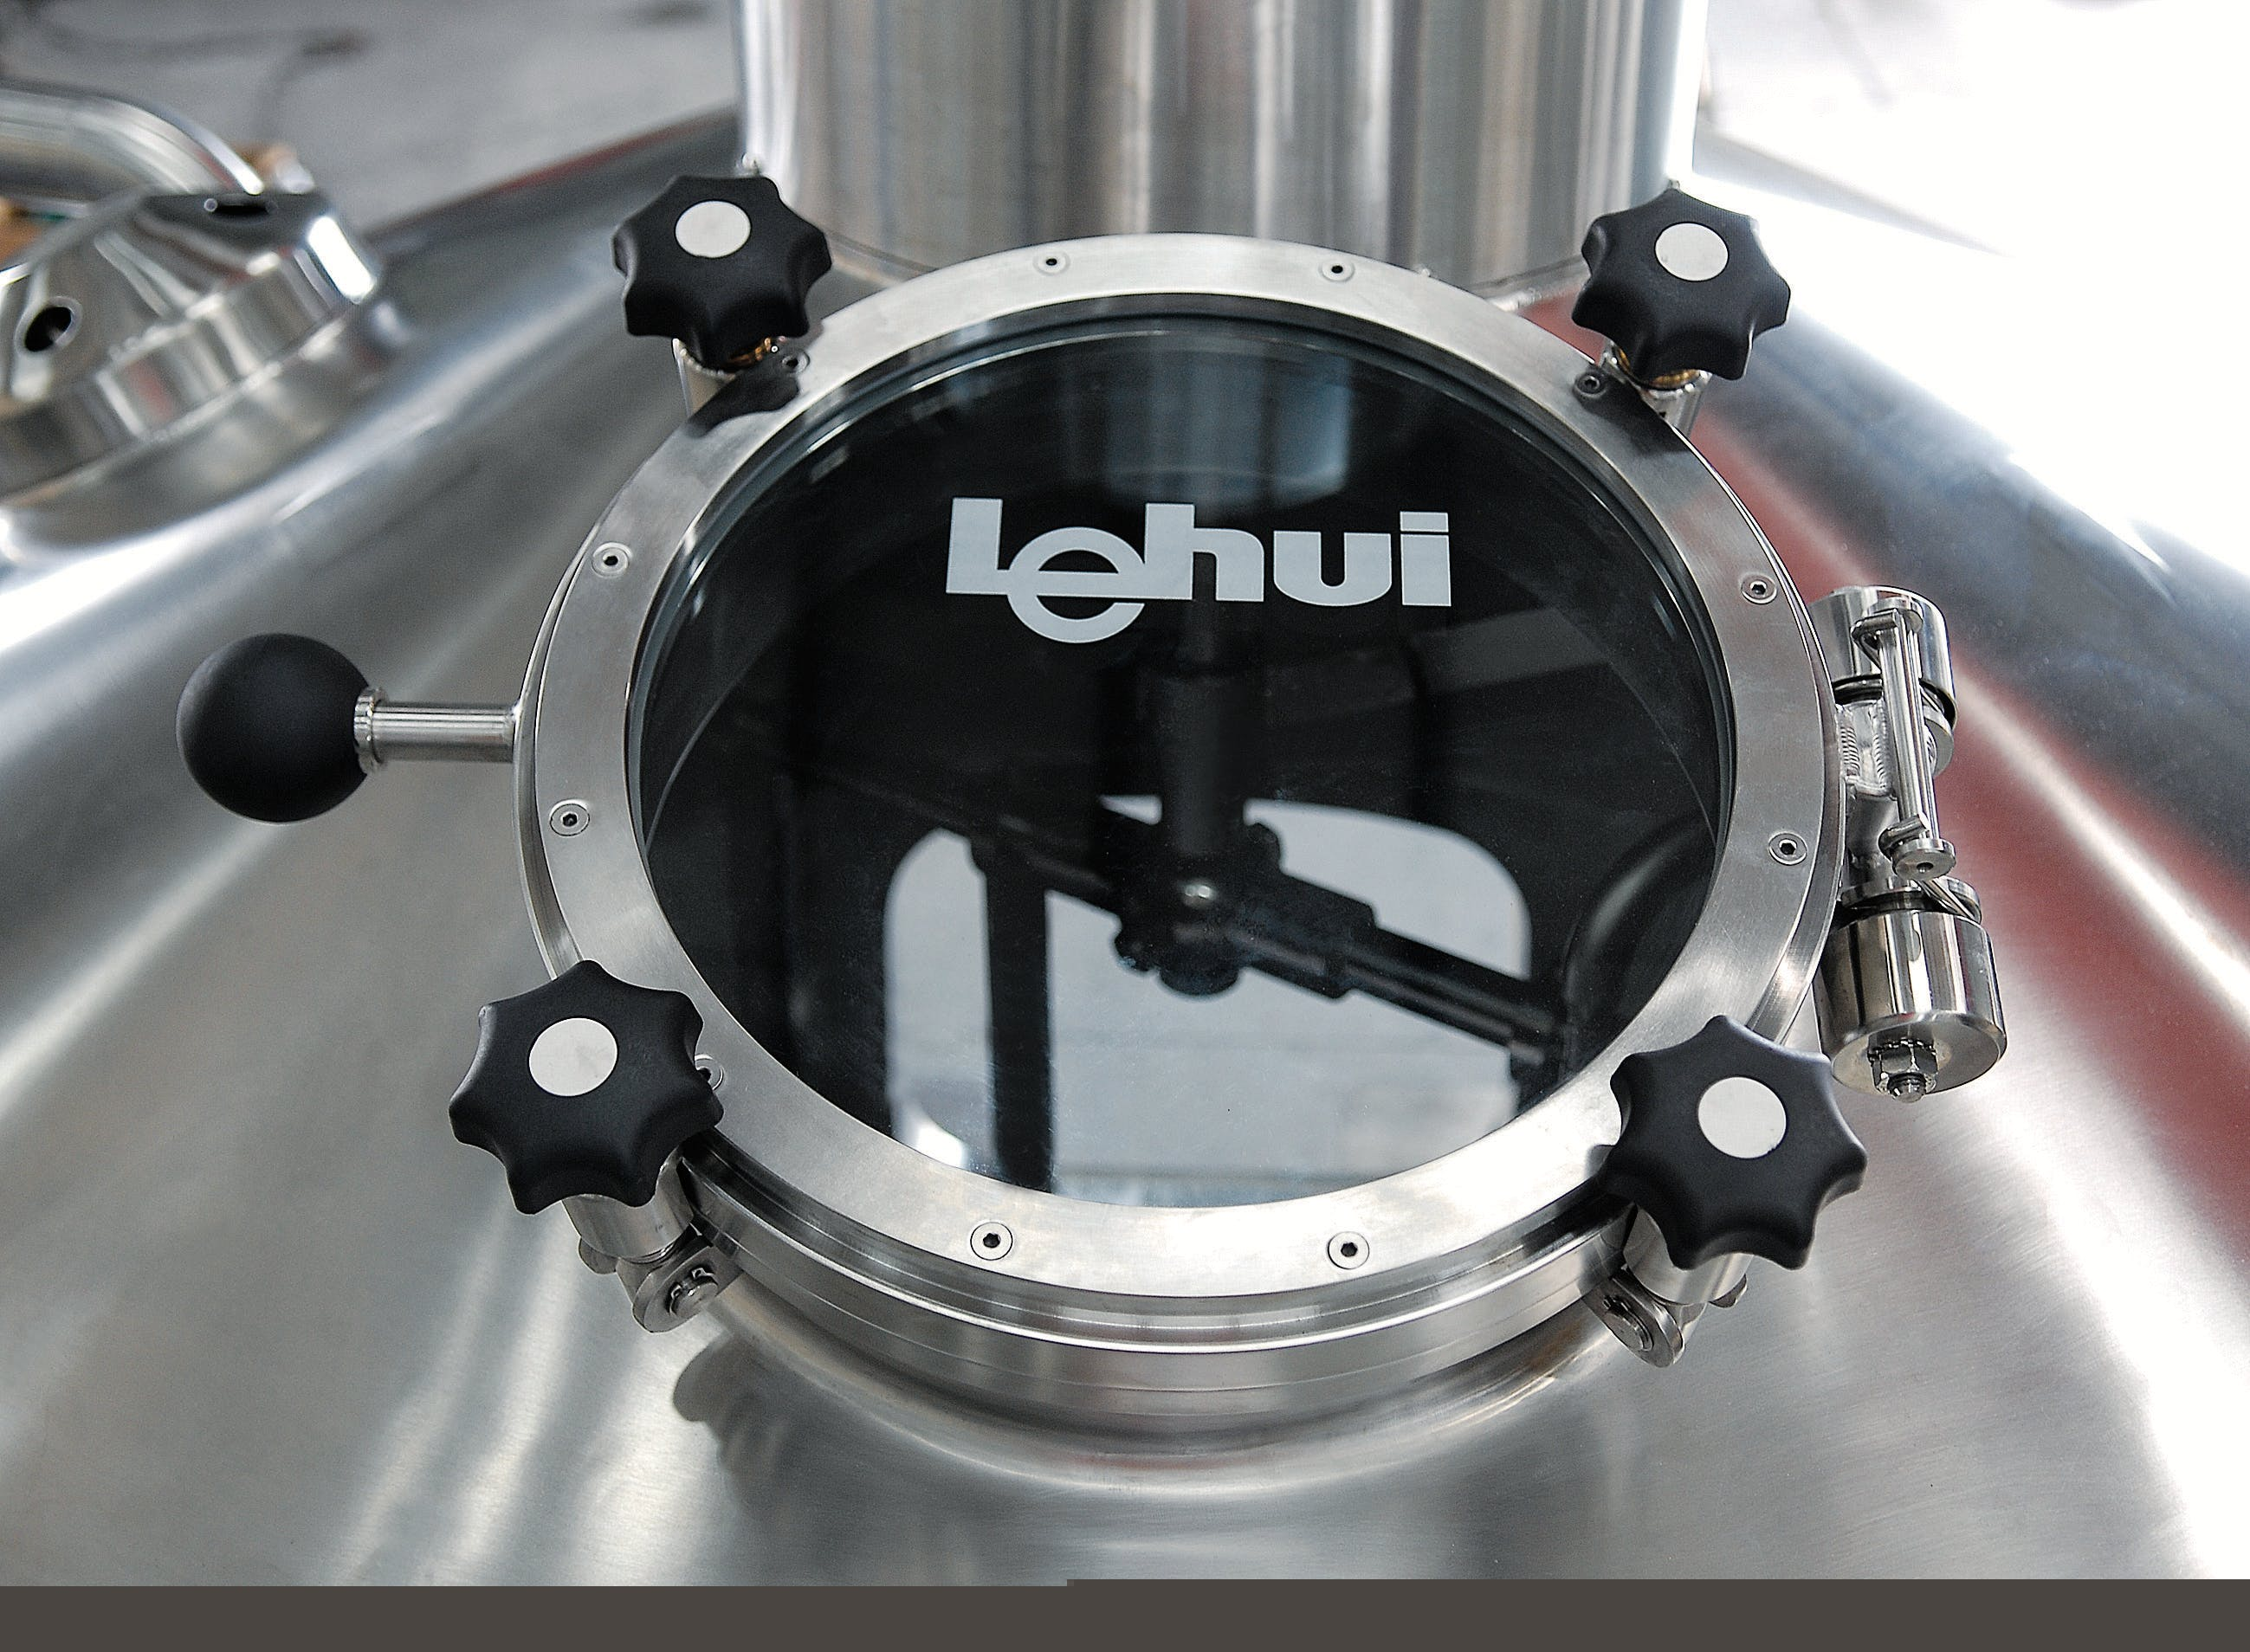 Lehui Brewing Equipment Brewhouse sold by NDL Keg